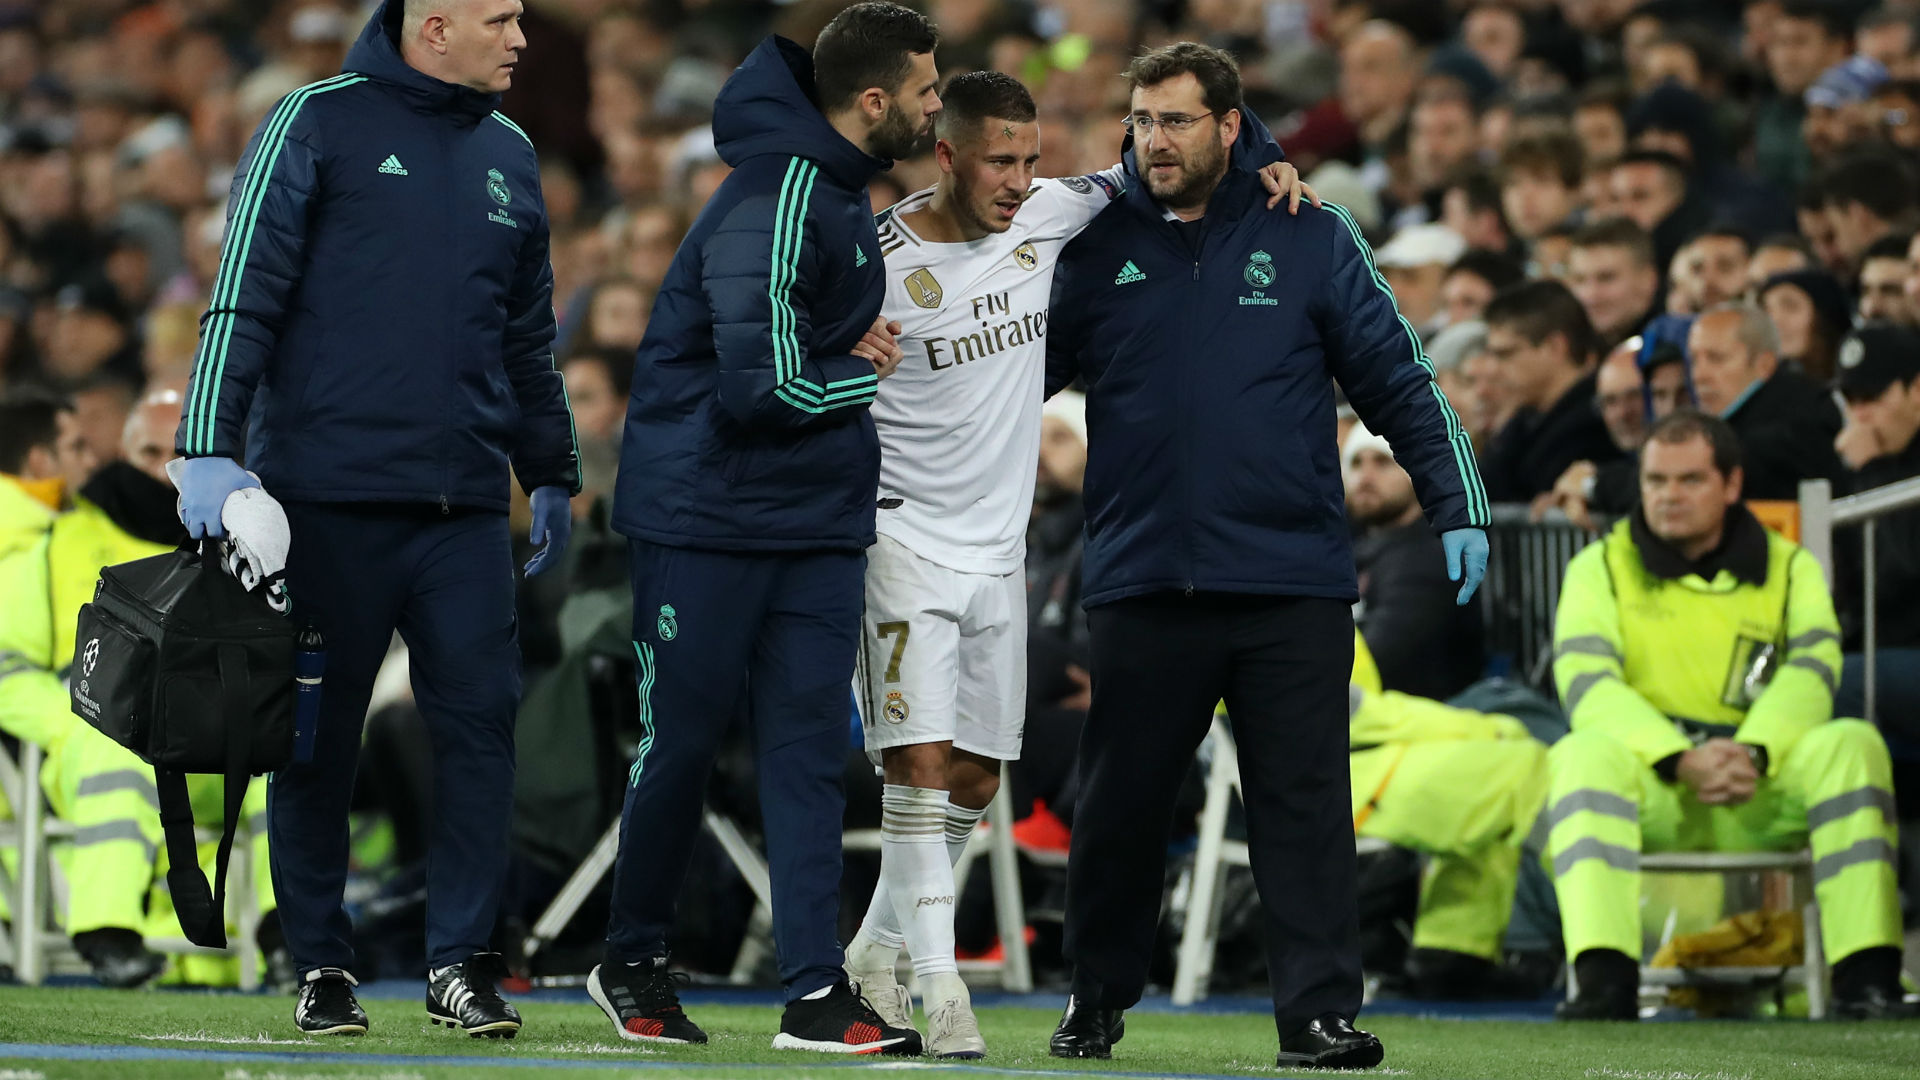 Eden Hazard set to miss El Clasico with small fracture in ankle